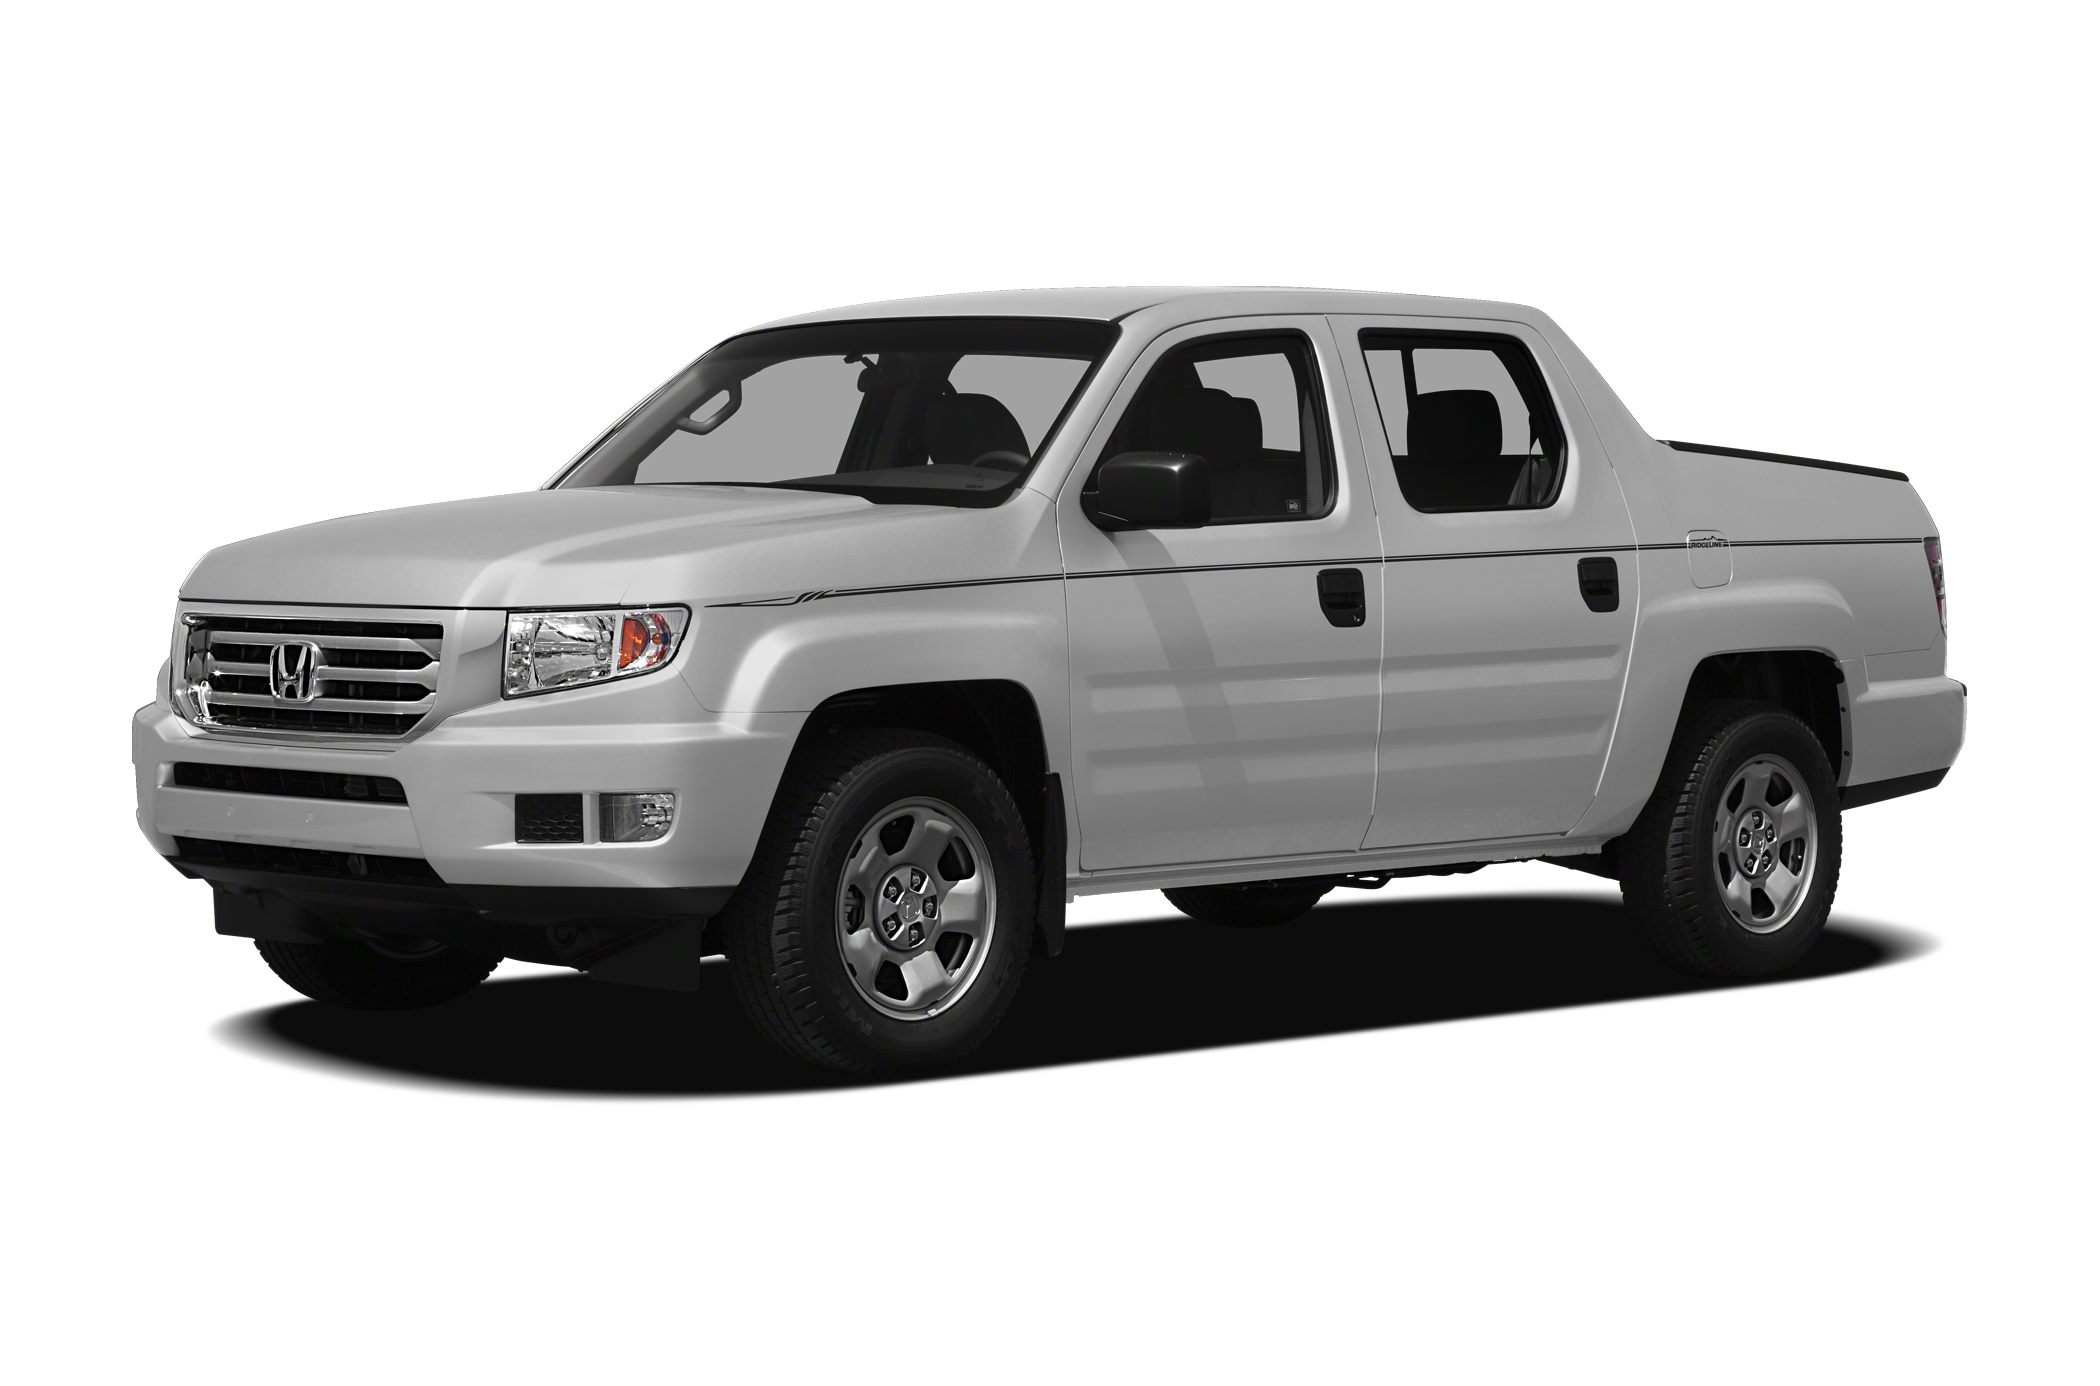 2012 Honda Ridgeline RTL Need gas I dont think so At least not very much 21 MPG Hwy Who coul